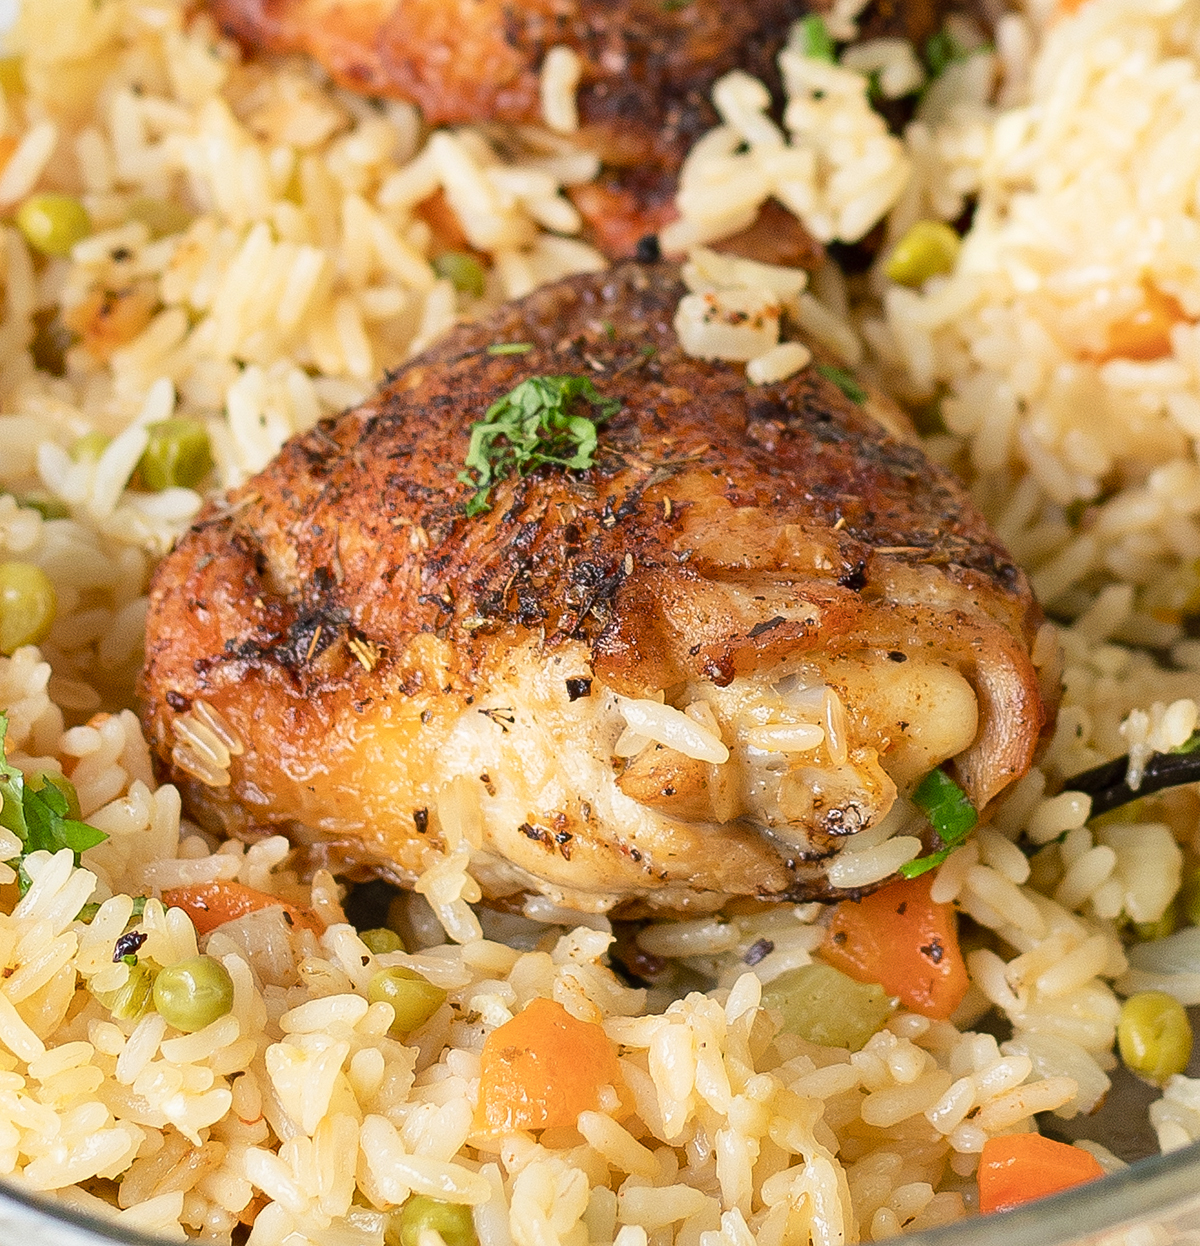 Baked Chicken And Rice in a big dinner plate